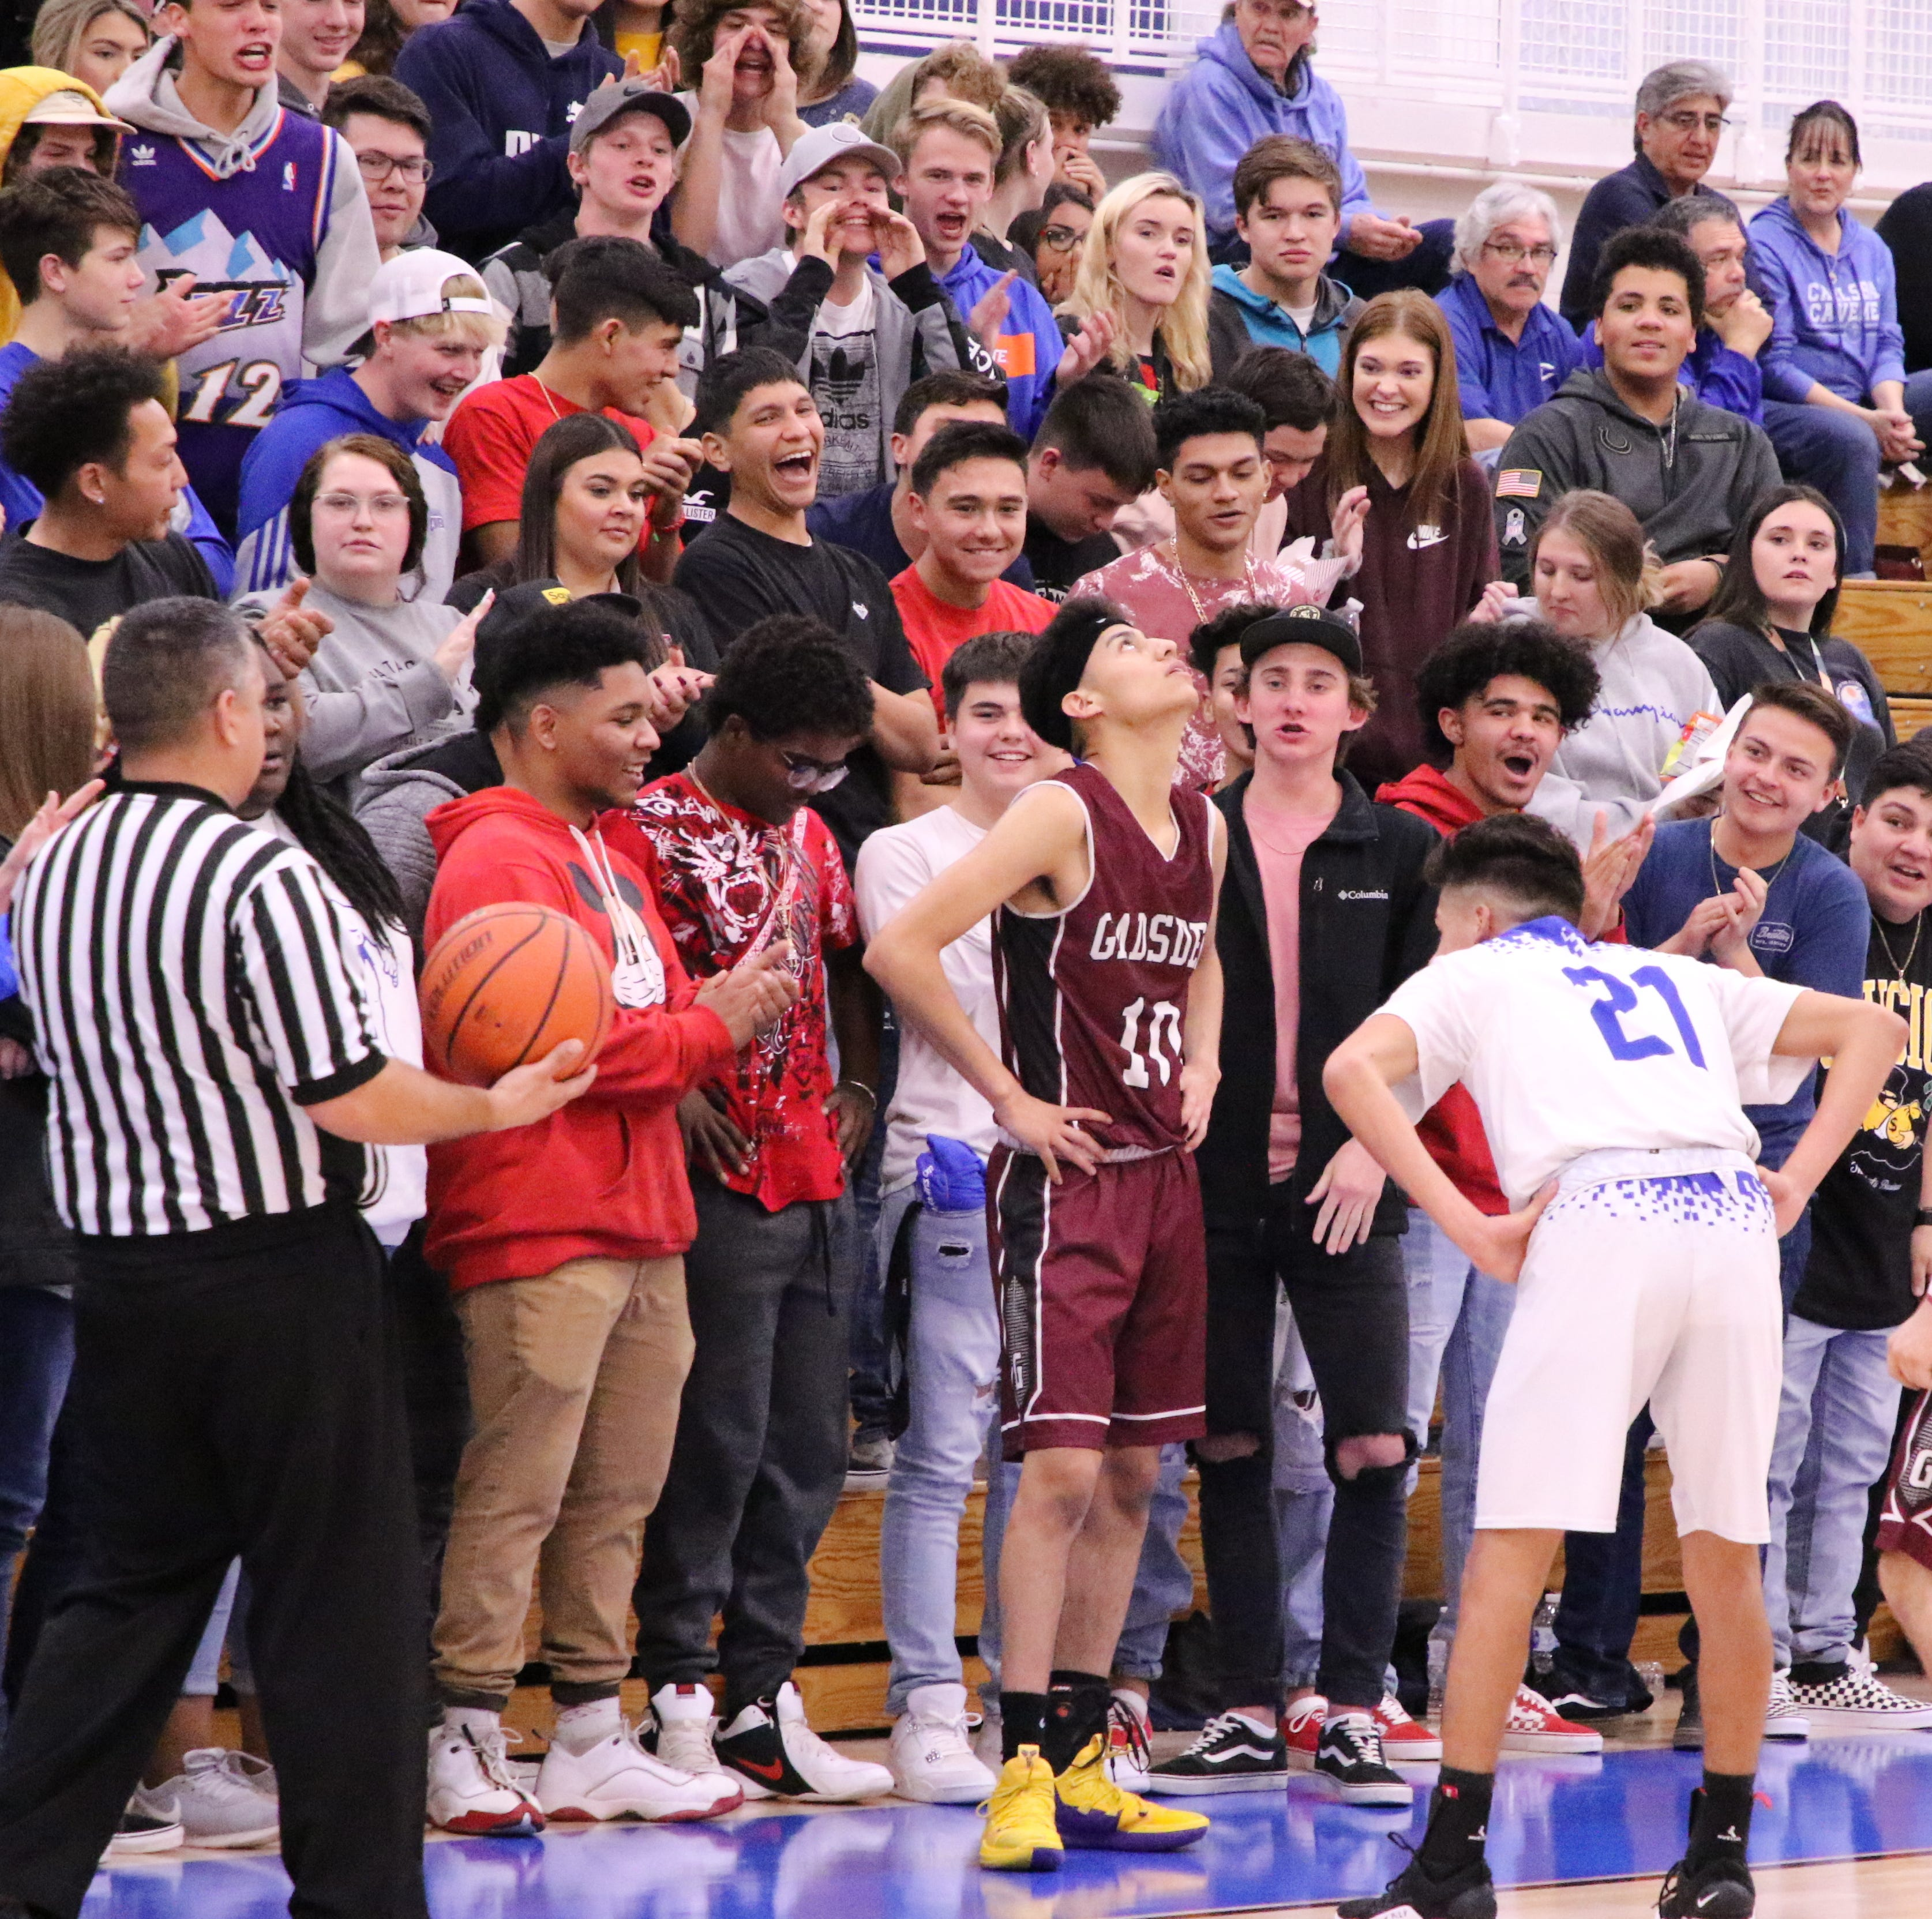 Carlsbad basketball games see seating restrictions due to bad student behavior